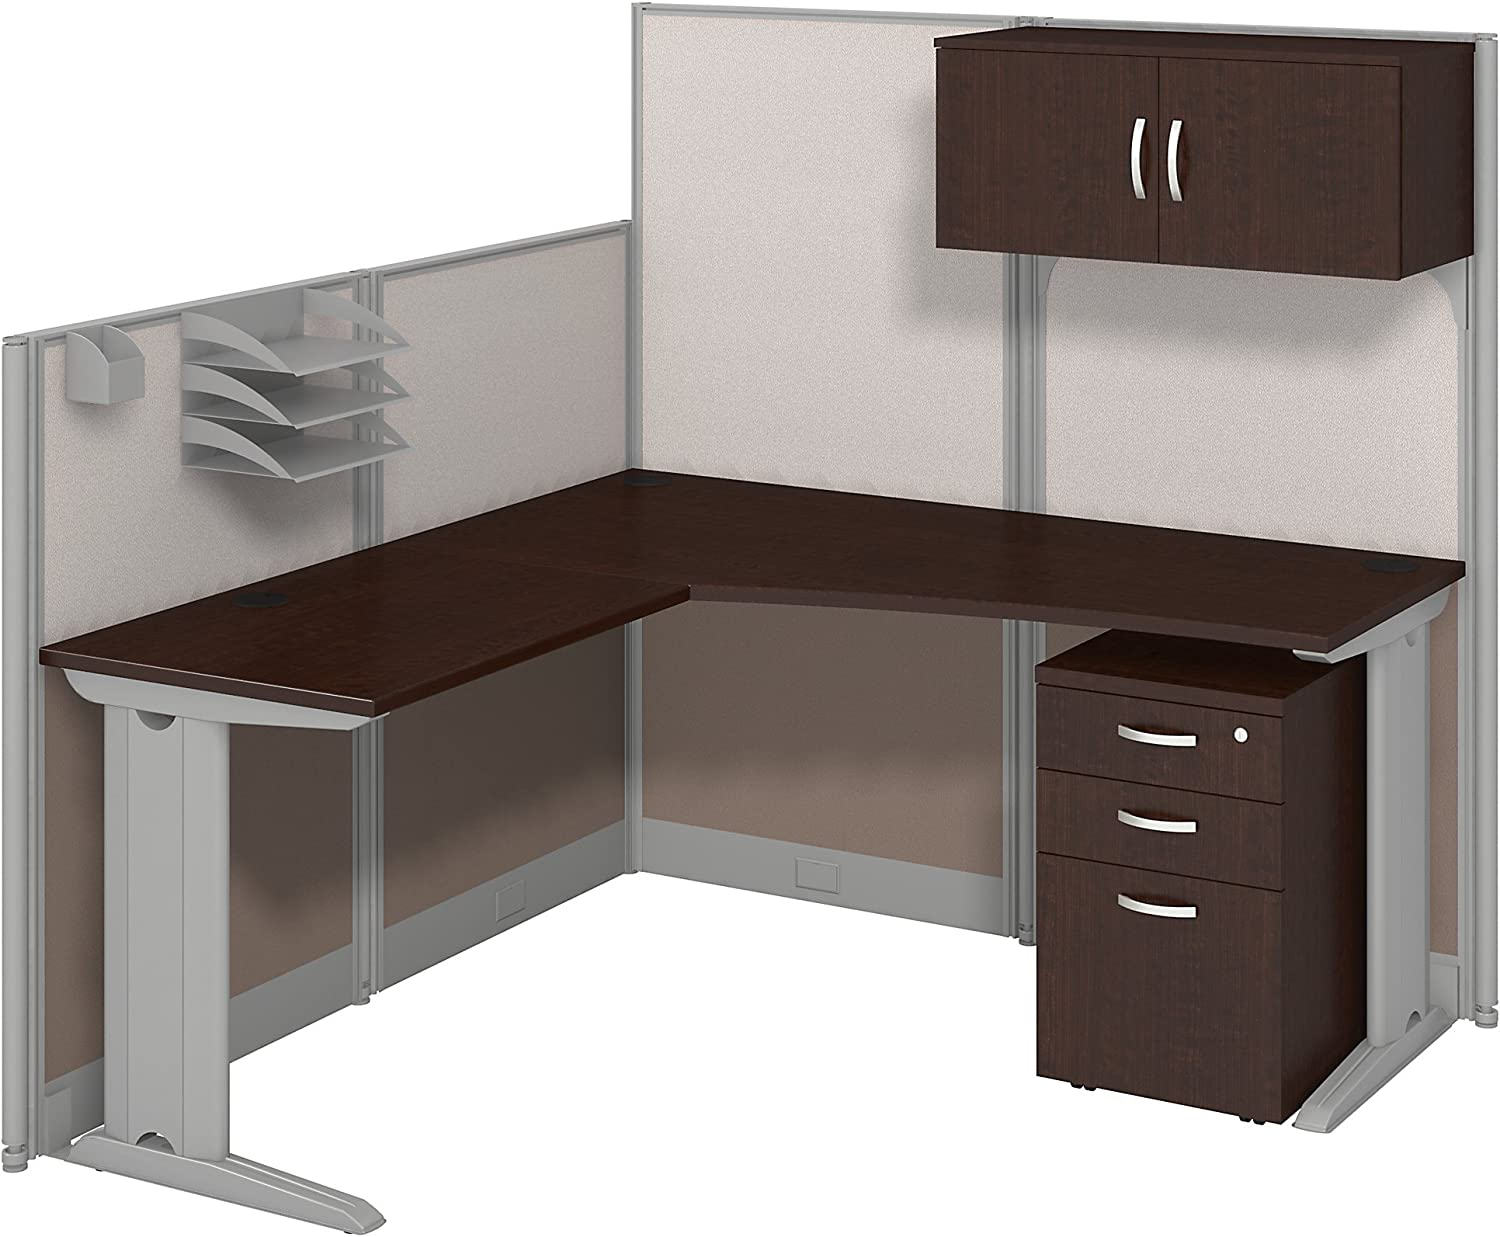 Bush Business Furniture Office in an Hour 65W x 65D LWorkstation with Storage and Accessory Kit in Mocha Cherry